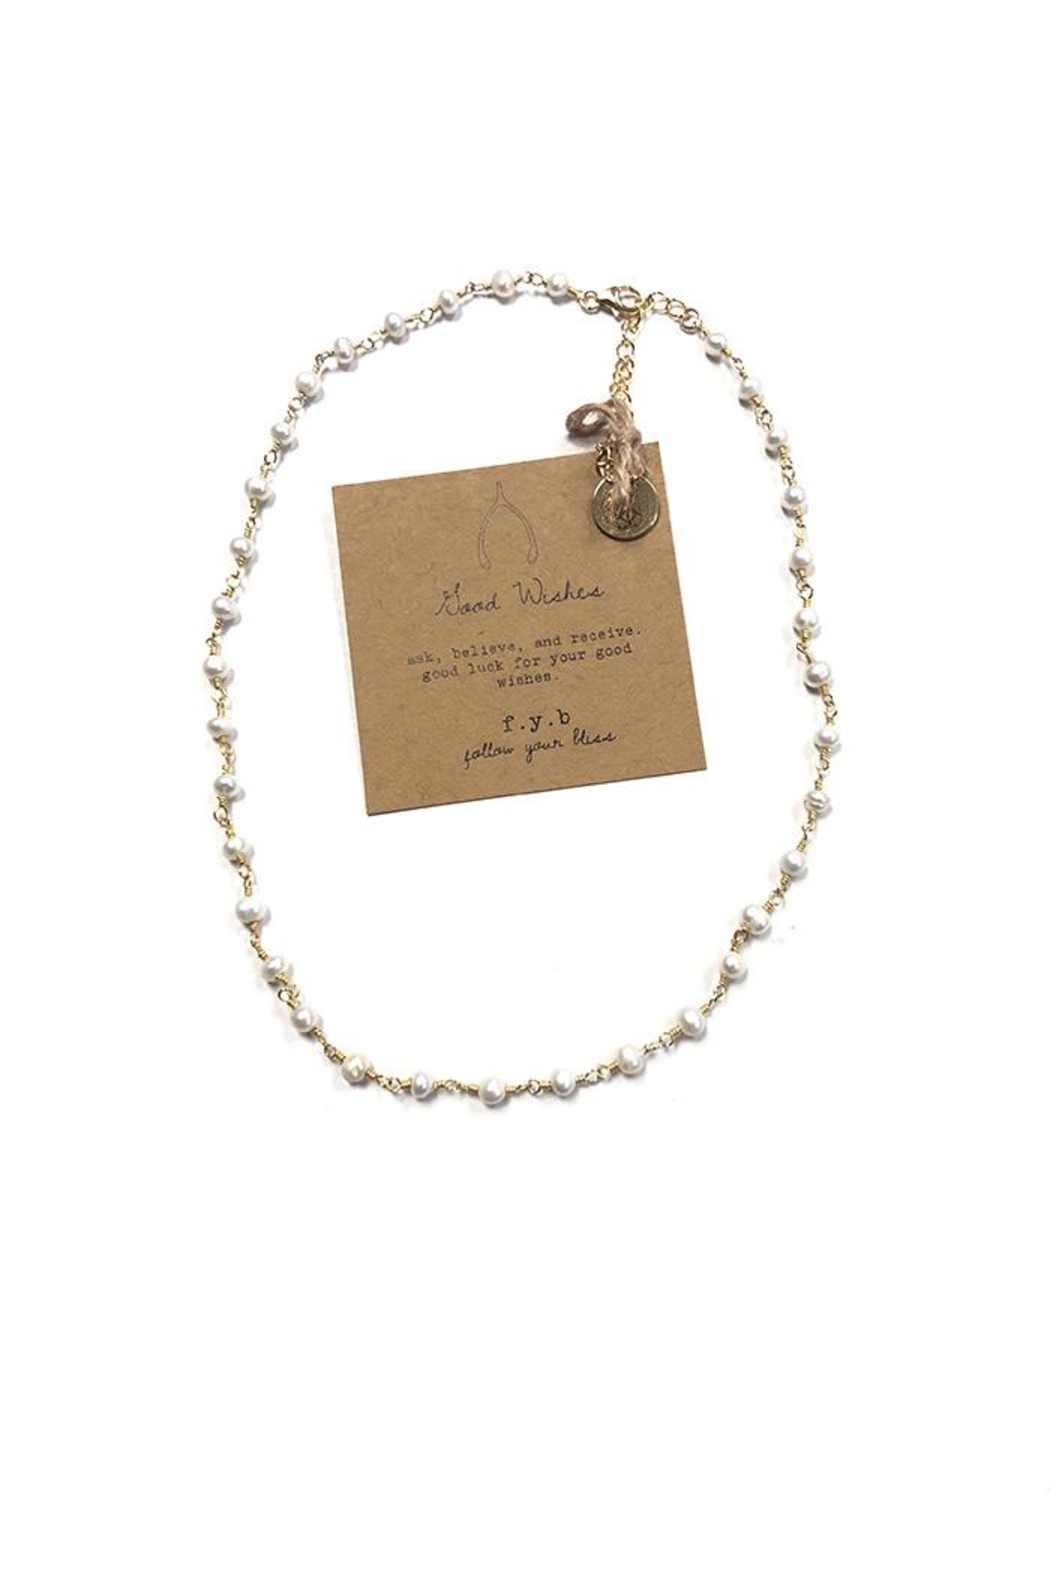 Lets Accessorize Good Wishes Pearl-Choker - Main Image